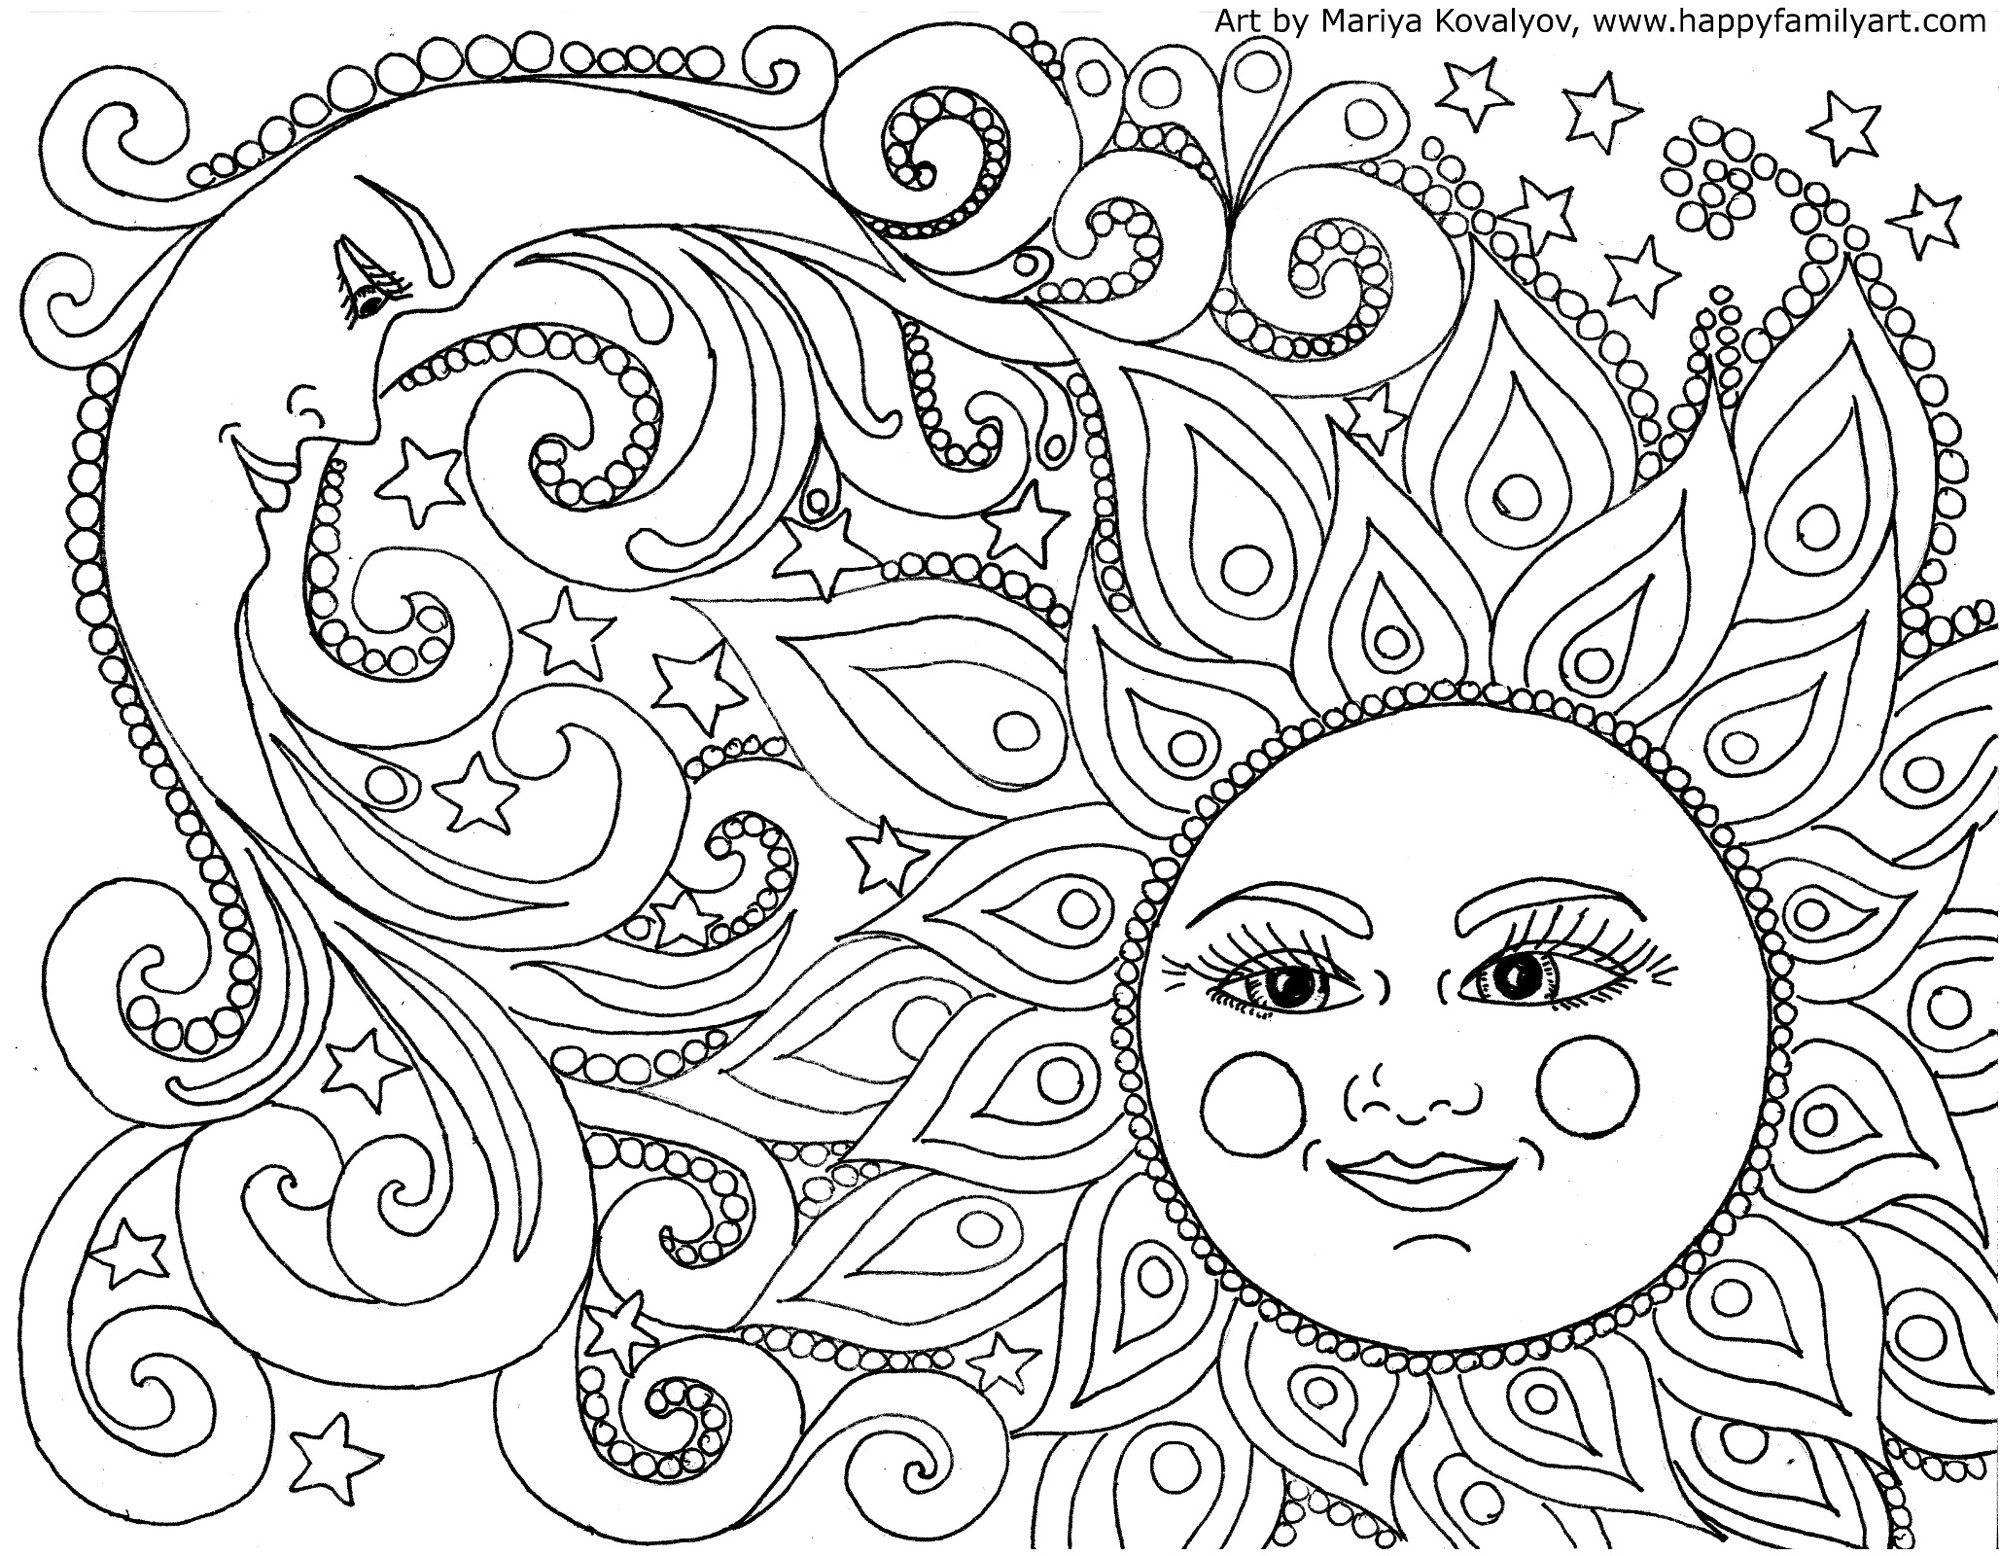 Pages Free - Tutlin.psstech.co - Free Printable Coloring Pages For Adults Pdf